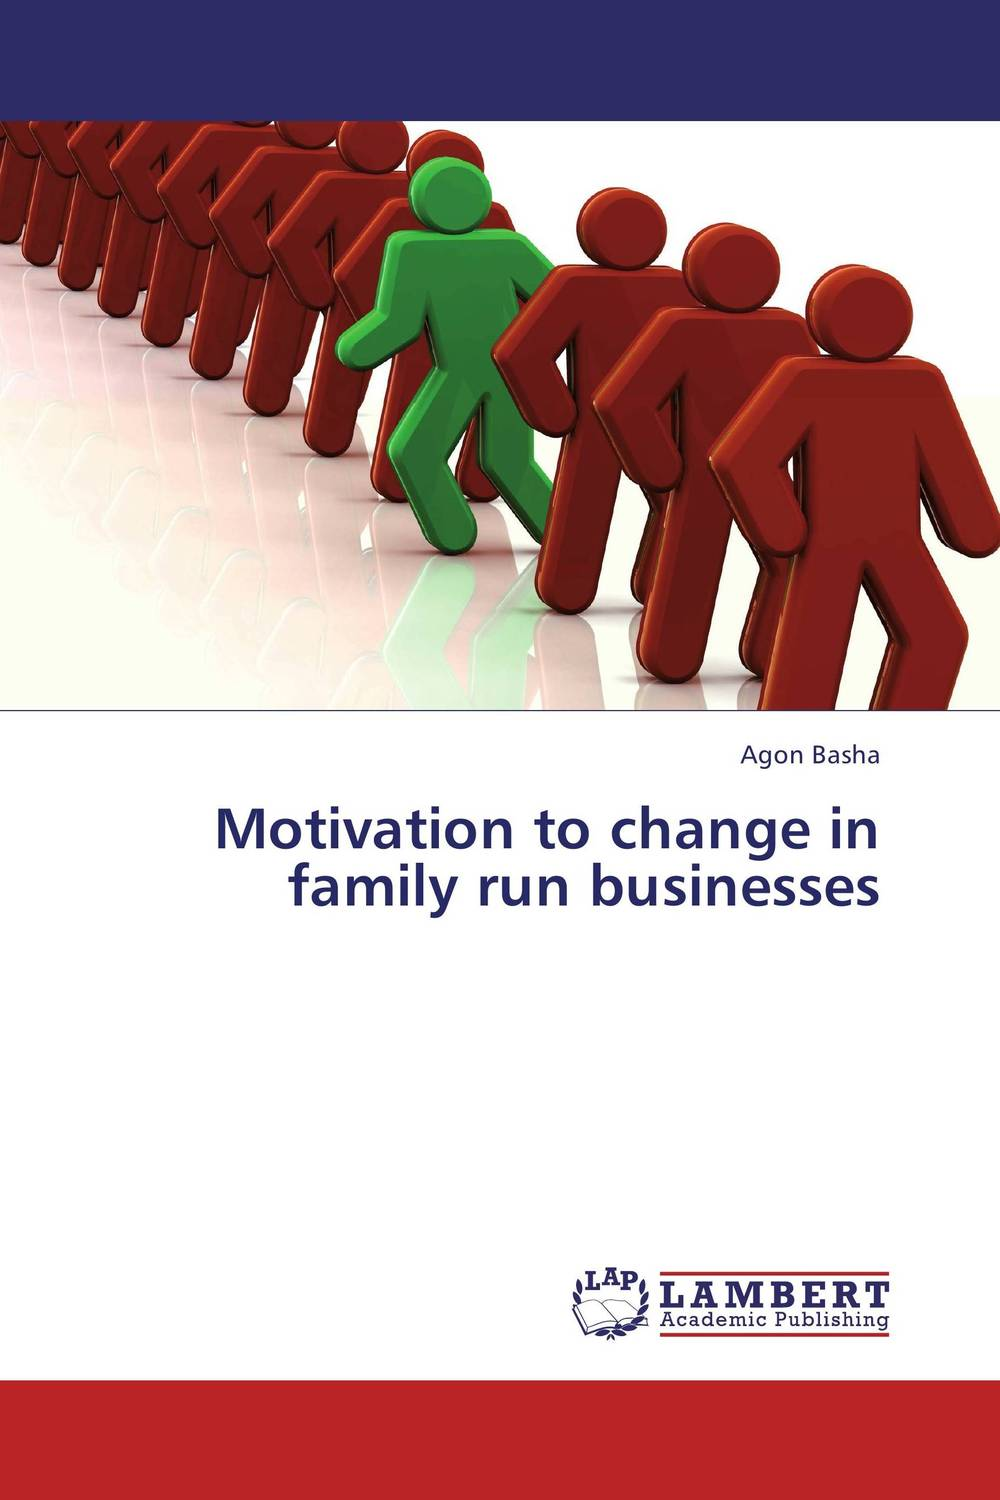 Motivation to change in family run businesses